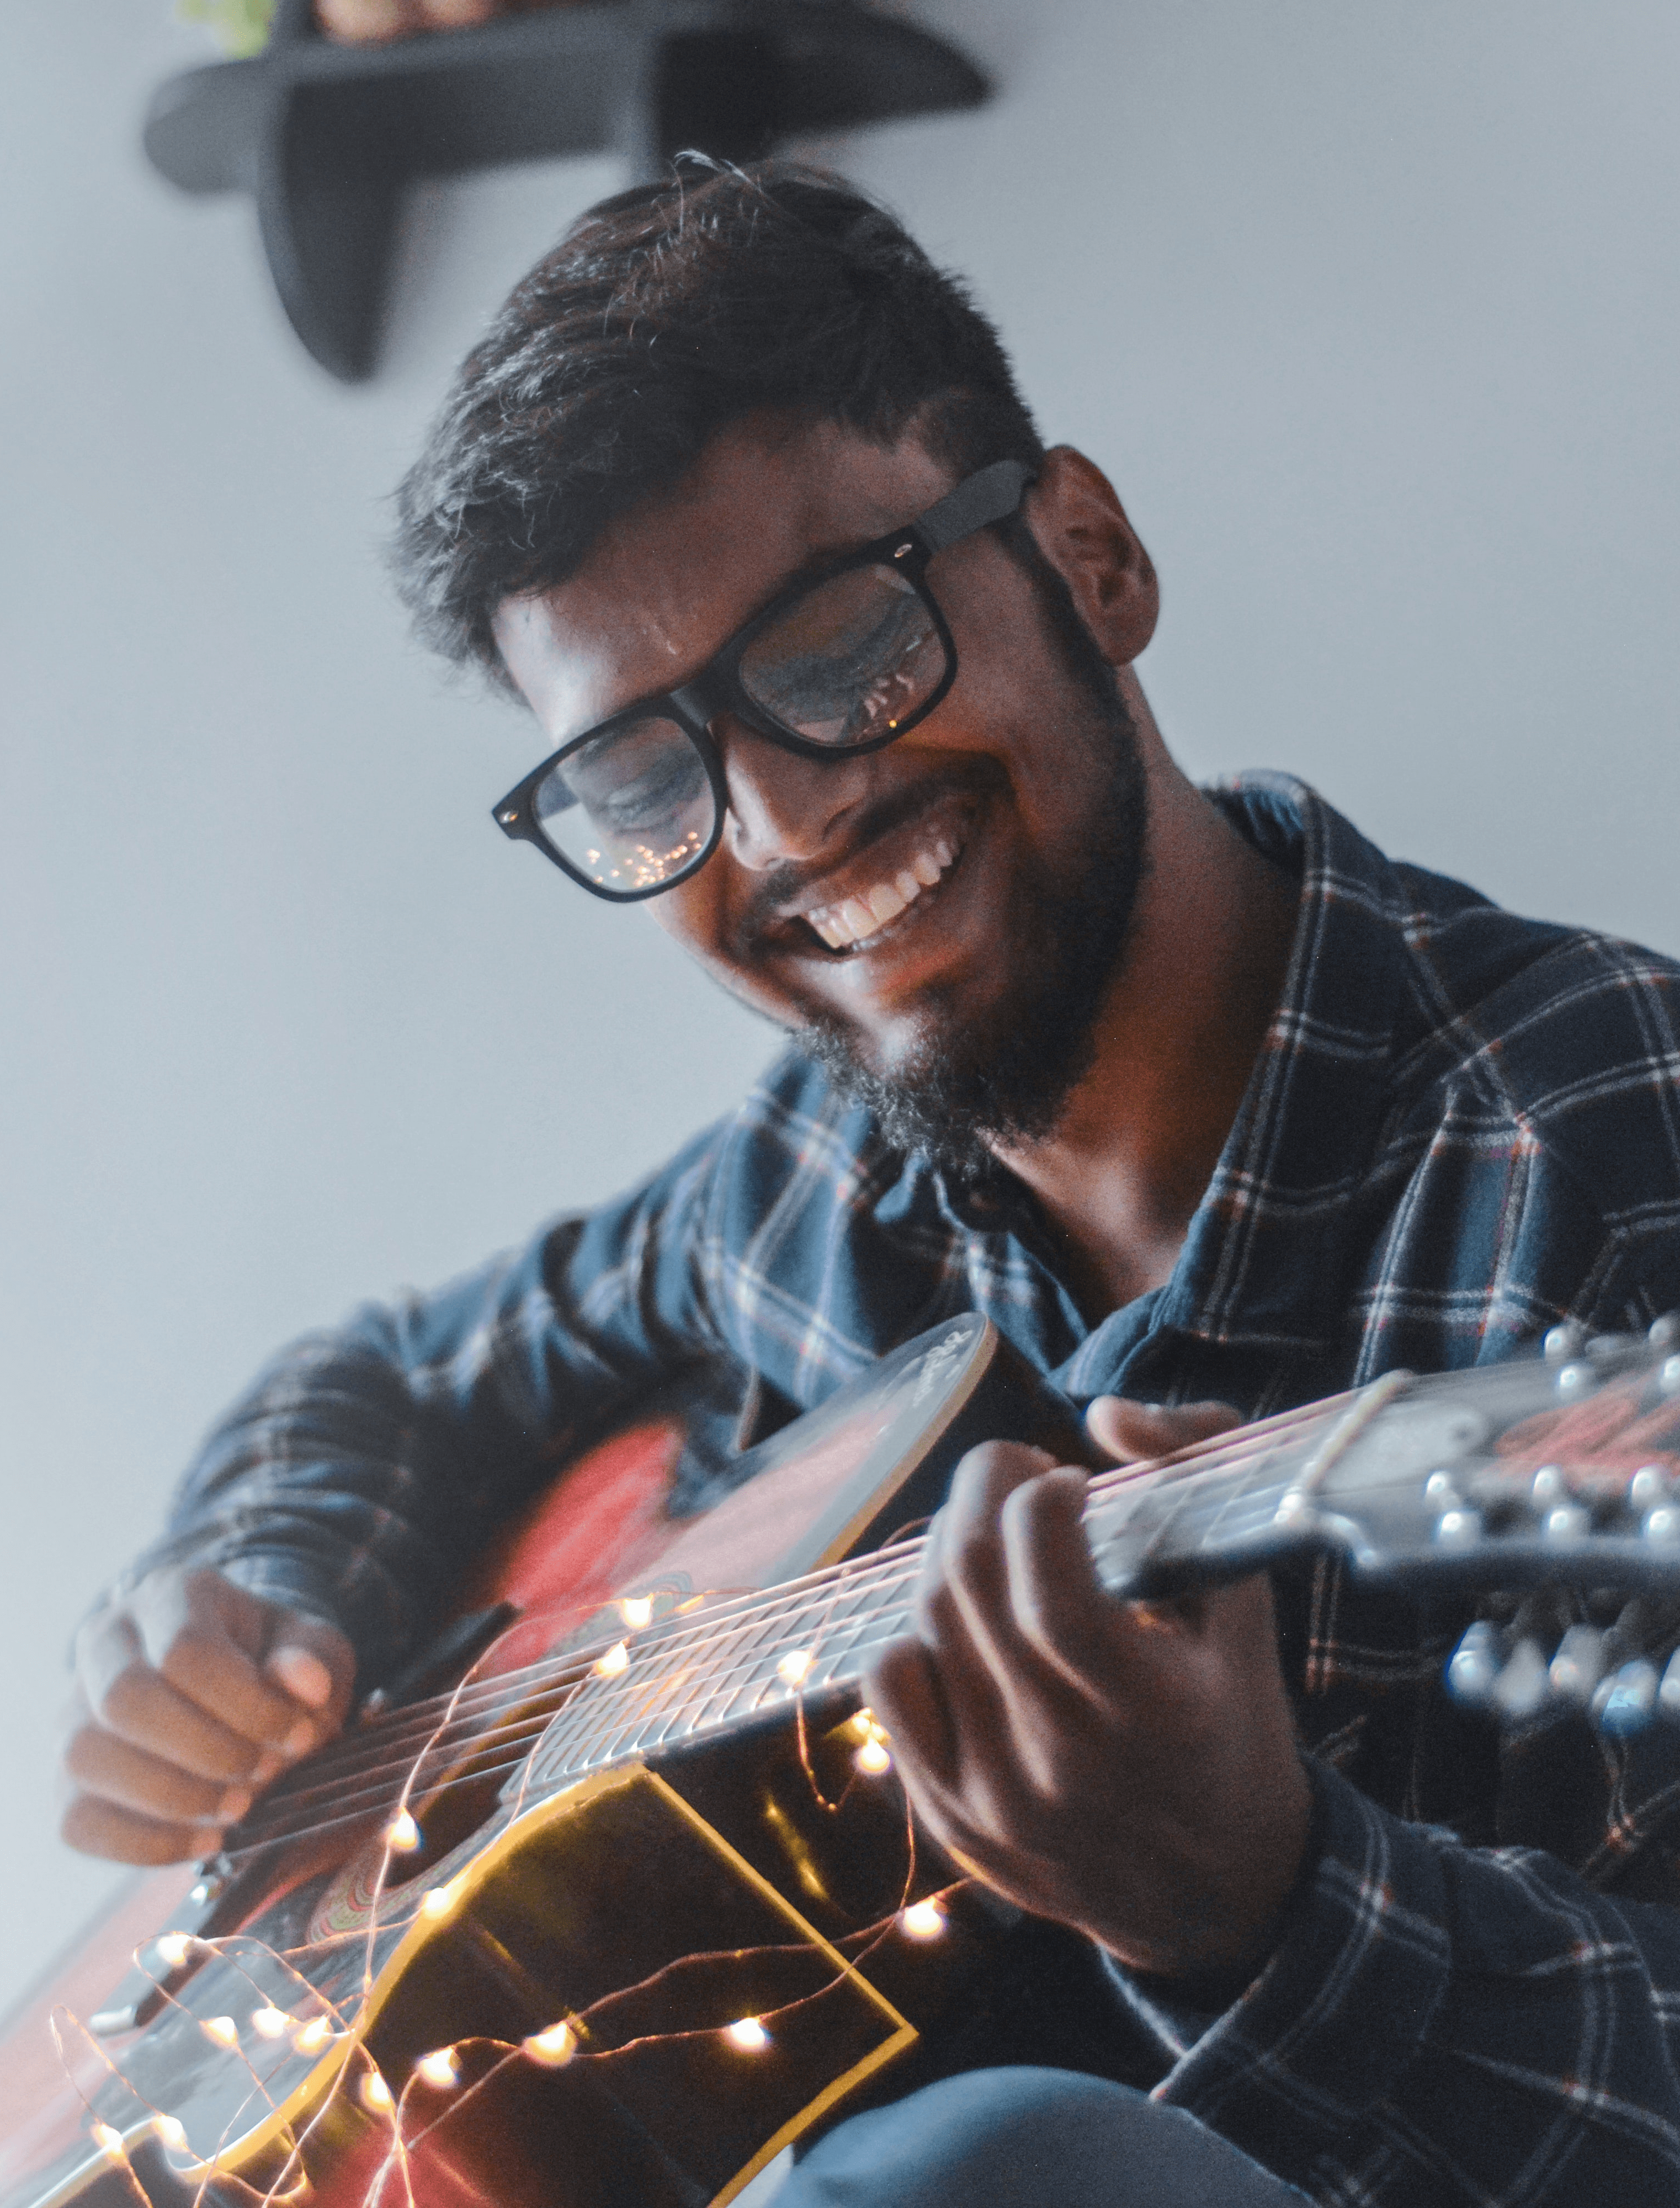 Music/Tune Scholarships for Creative High School Students